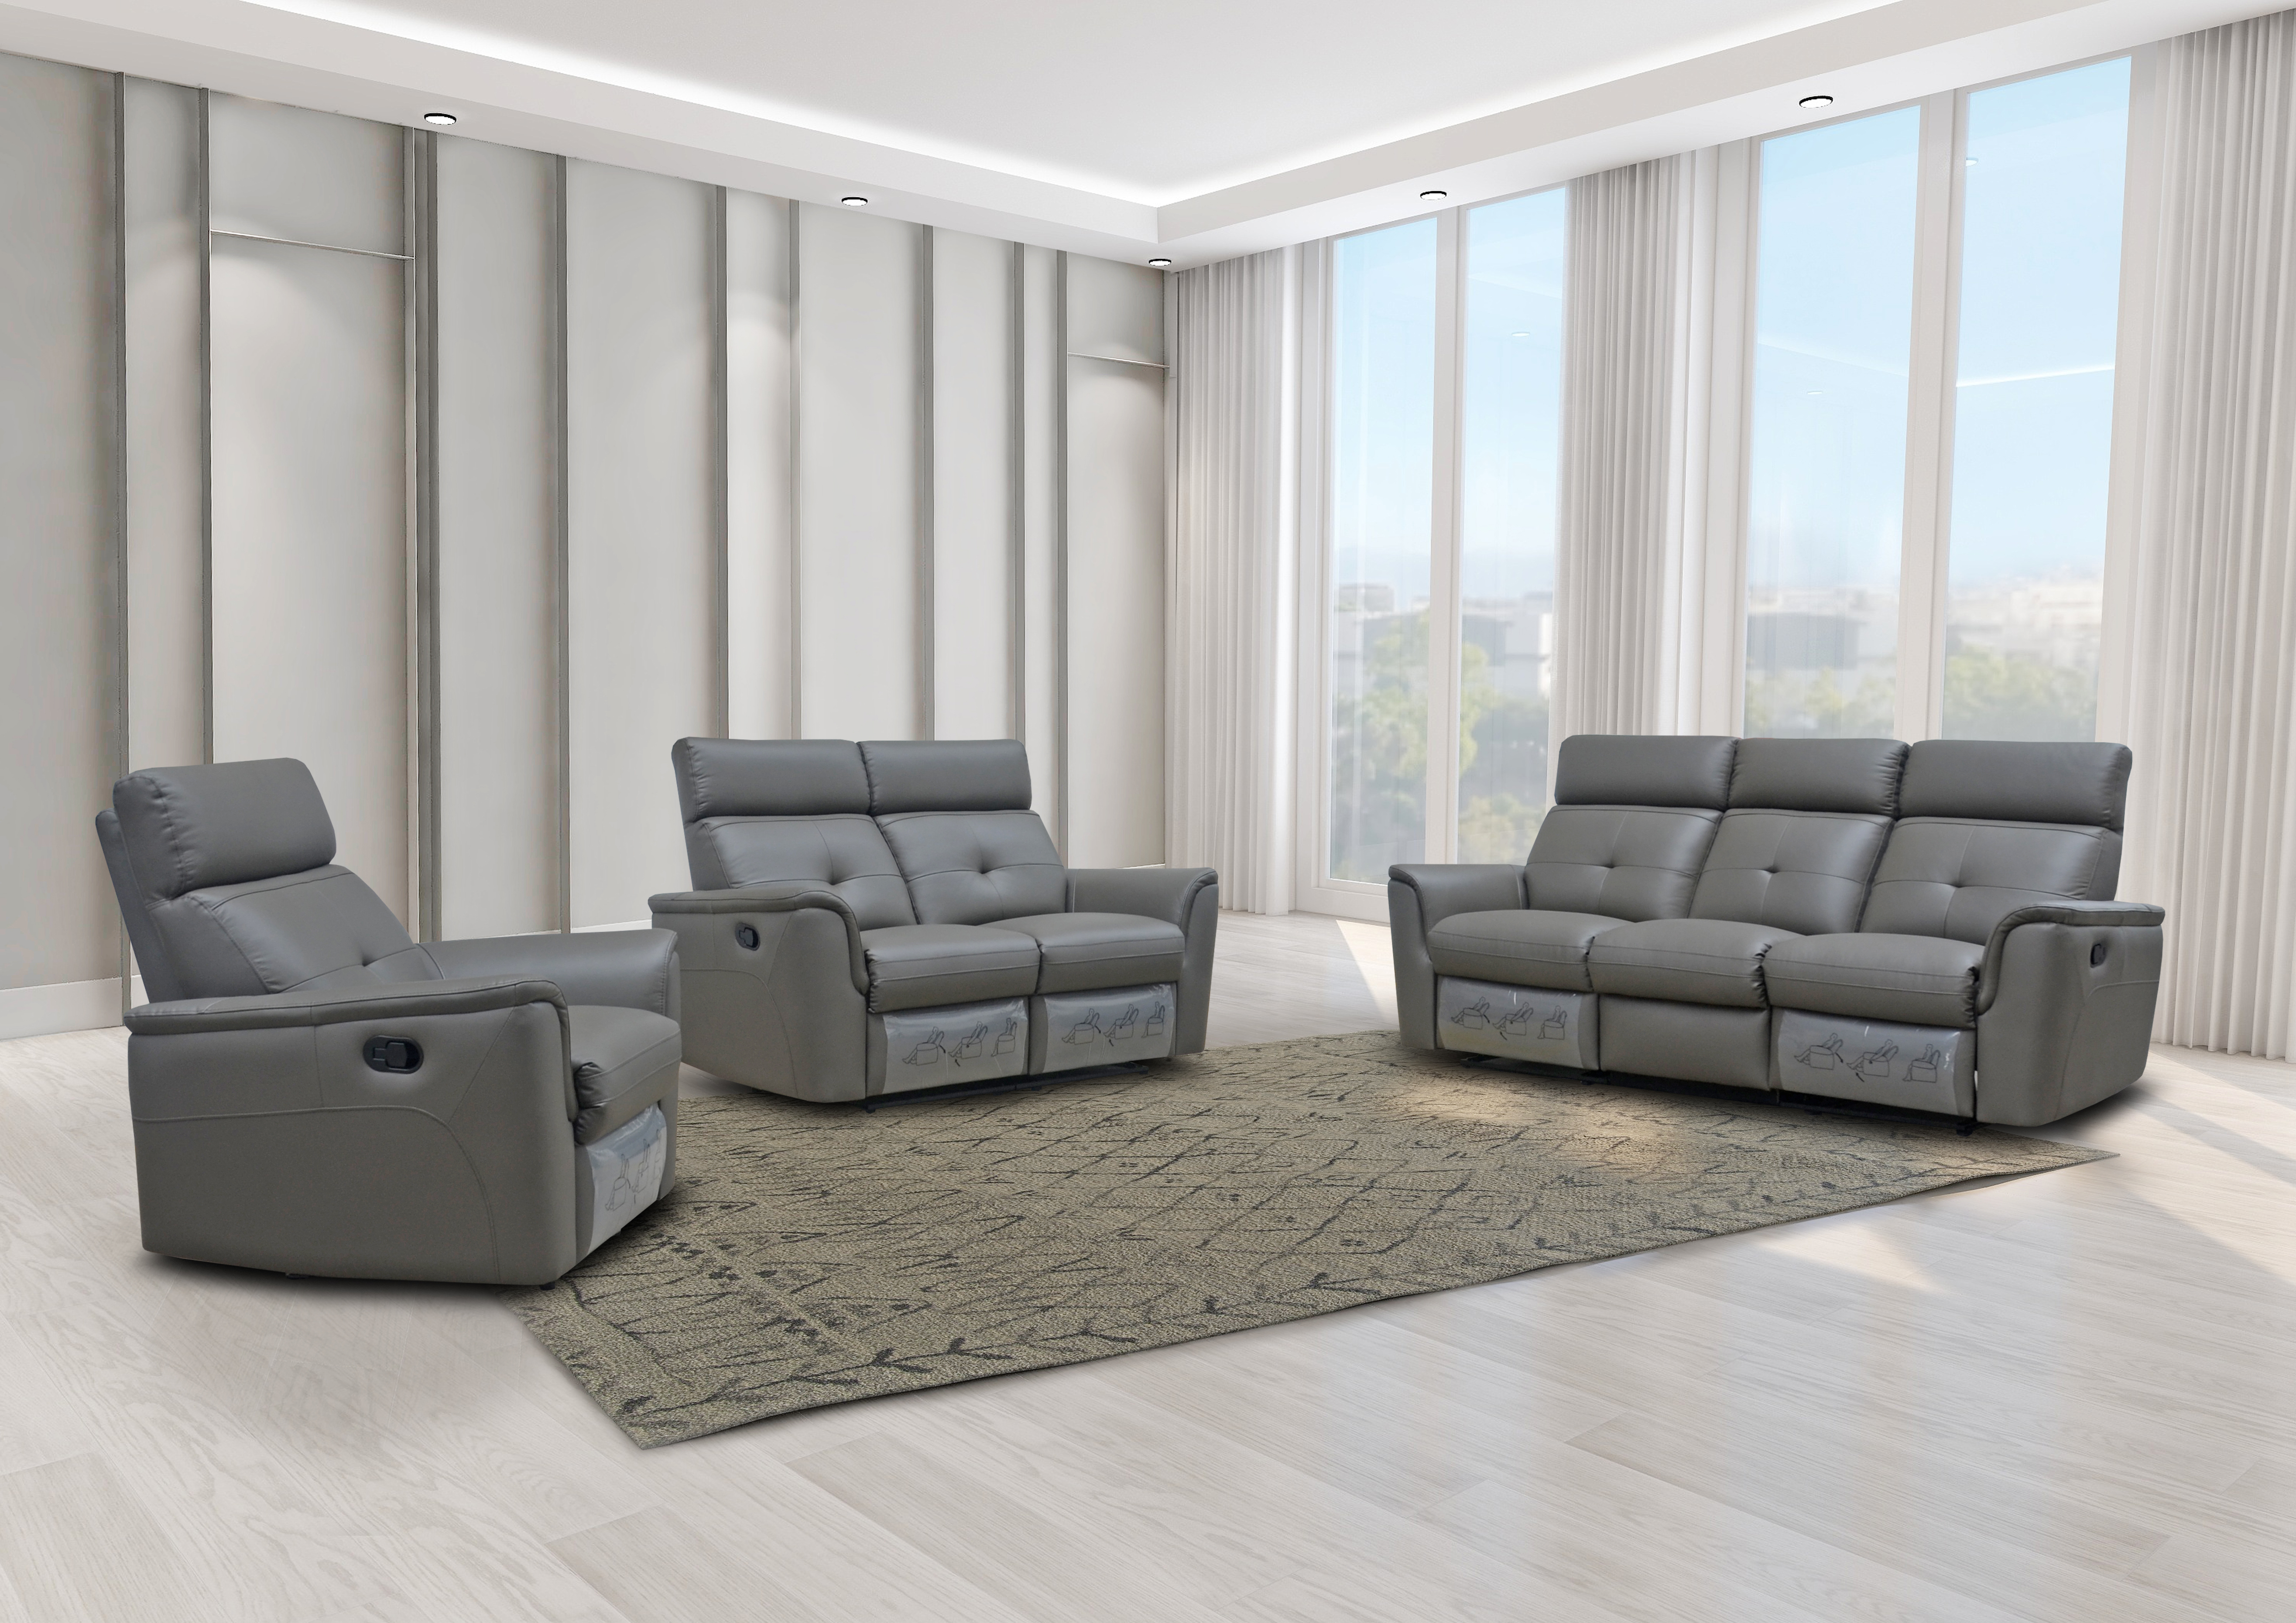 Living Room Furniture Sofas Loveseats and Chairs 8501 Dark Grey w/Manual Recliner